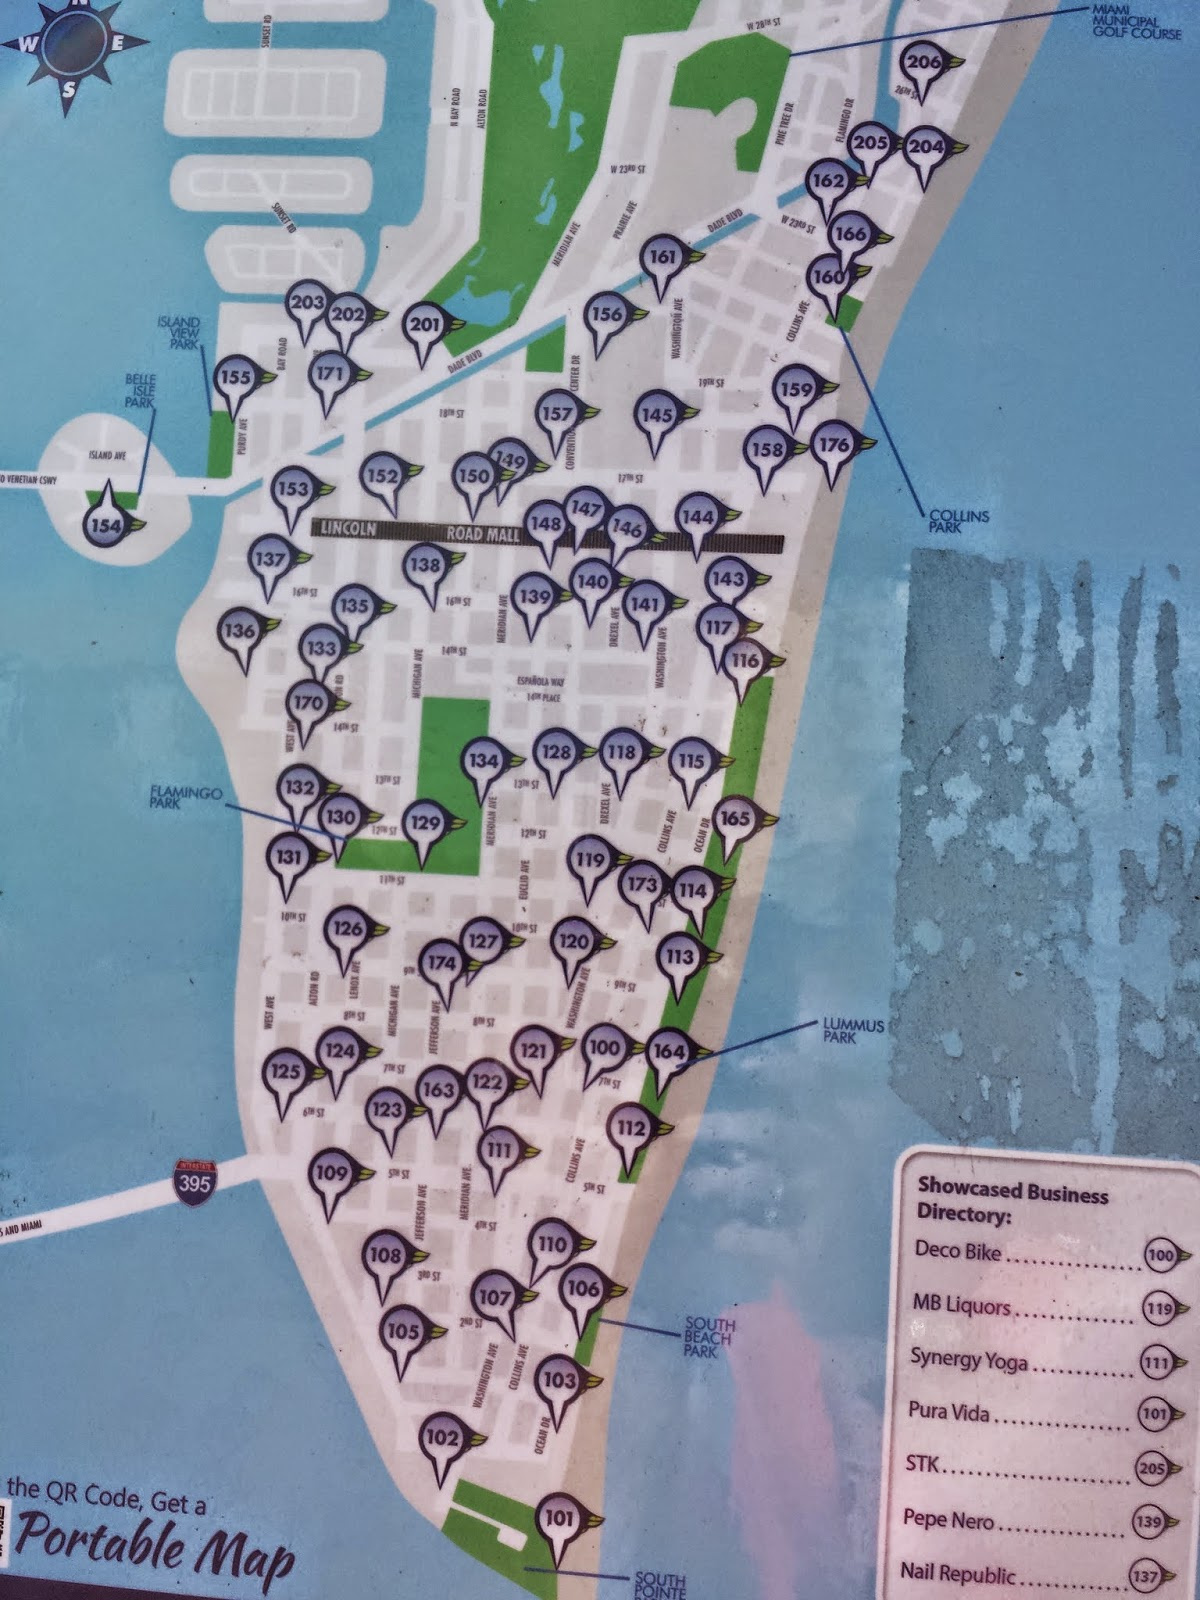 miami beach parking and parking alternatives by citi bike (operated by deco bike)